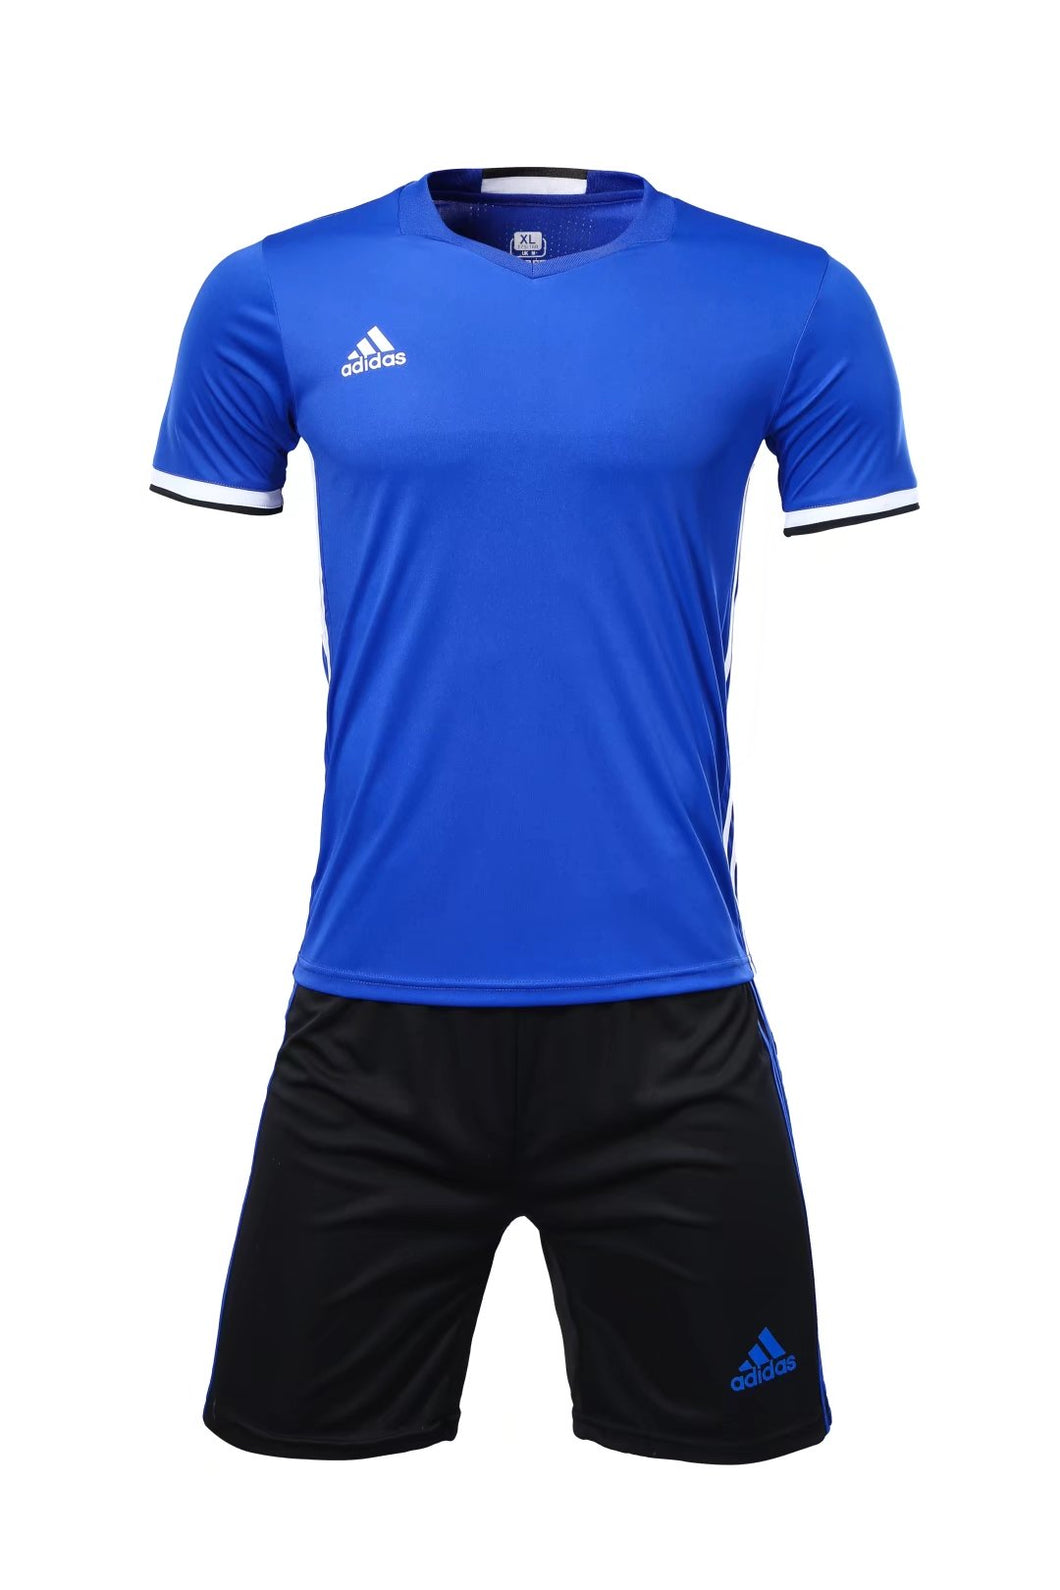 Adidas Full Football Kit Adult Sizes only - Blue with 3 Stripes and Black shorts